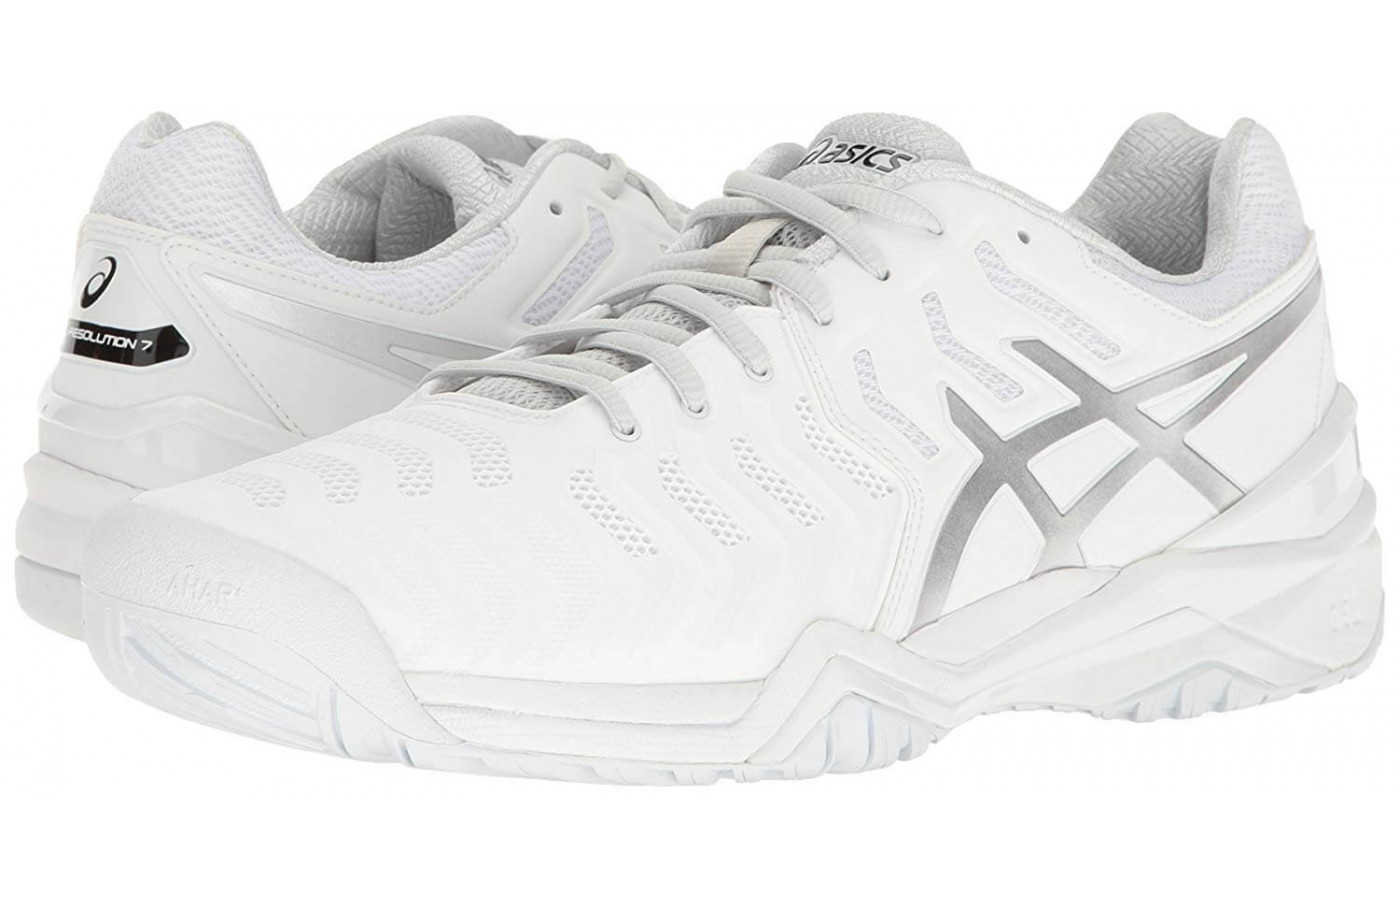 Asics Gel-Resolution 7 left right